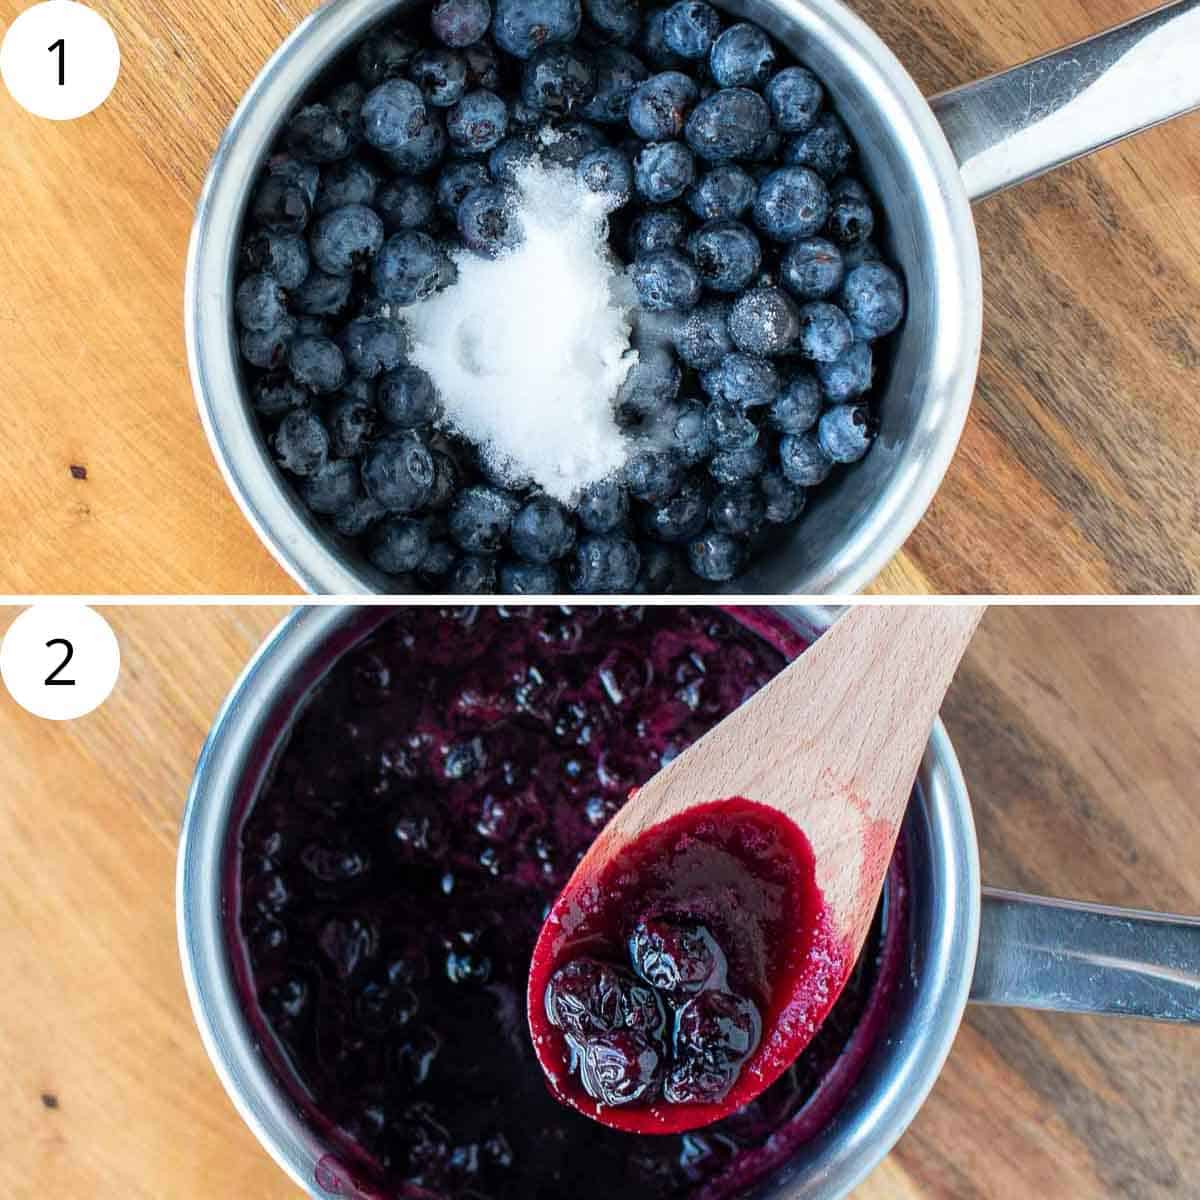 two images. top image is blueberries and white sugar in a saucepan. bottom image is blueberry compote in saucepan with wooden spoon lifting some out.